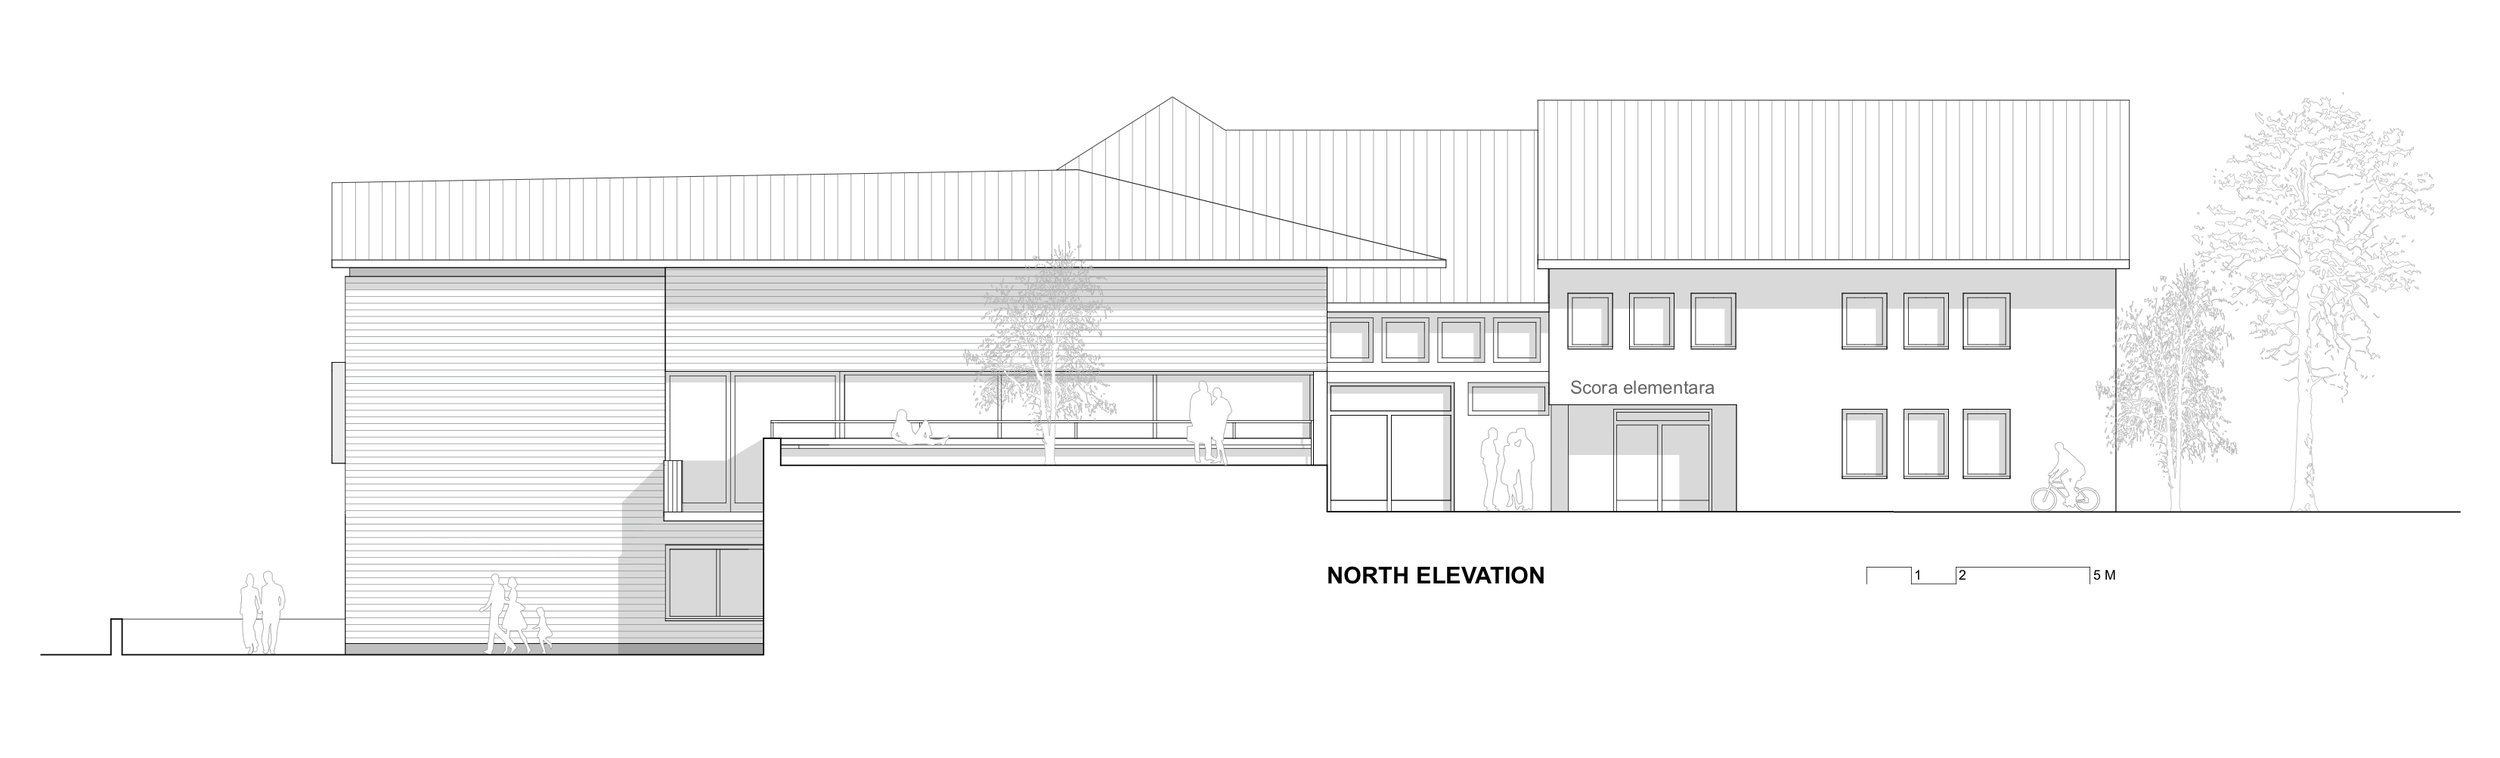 P.02 North Elevation.jpg